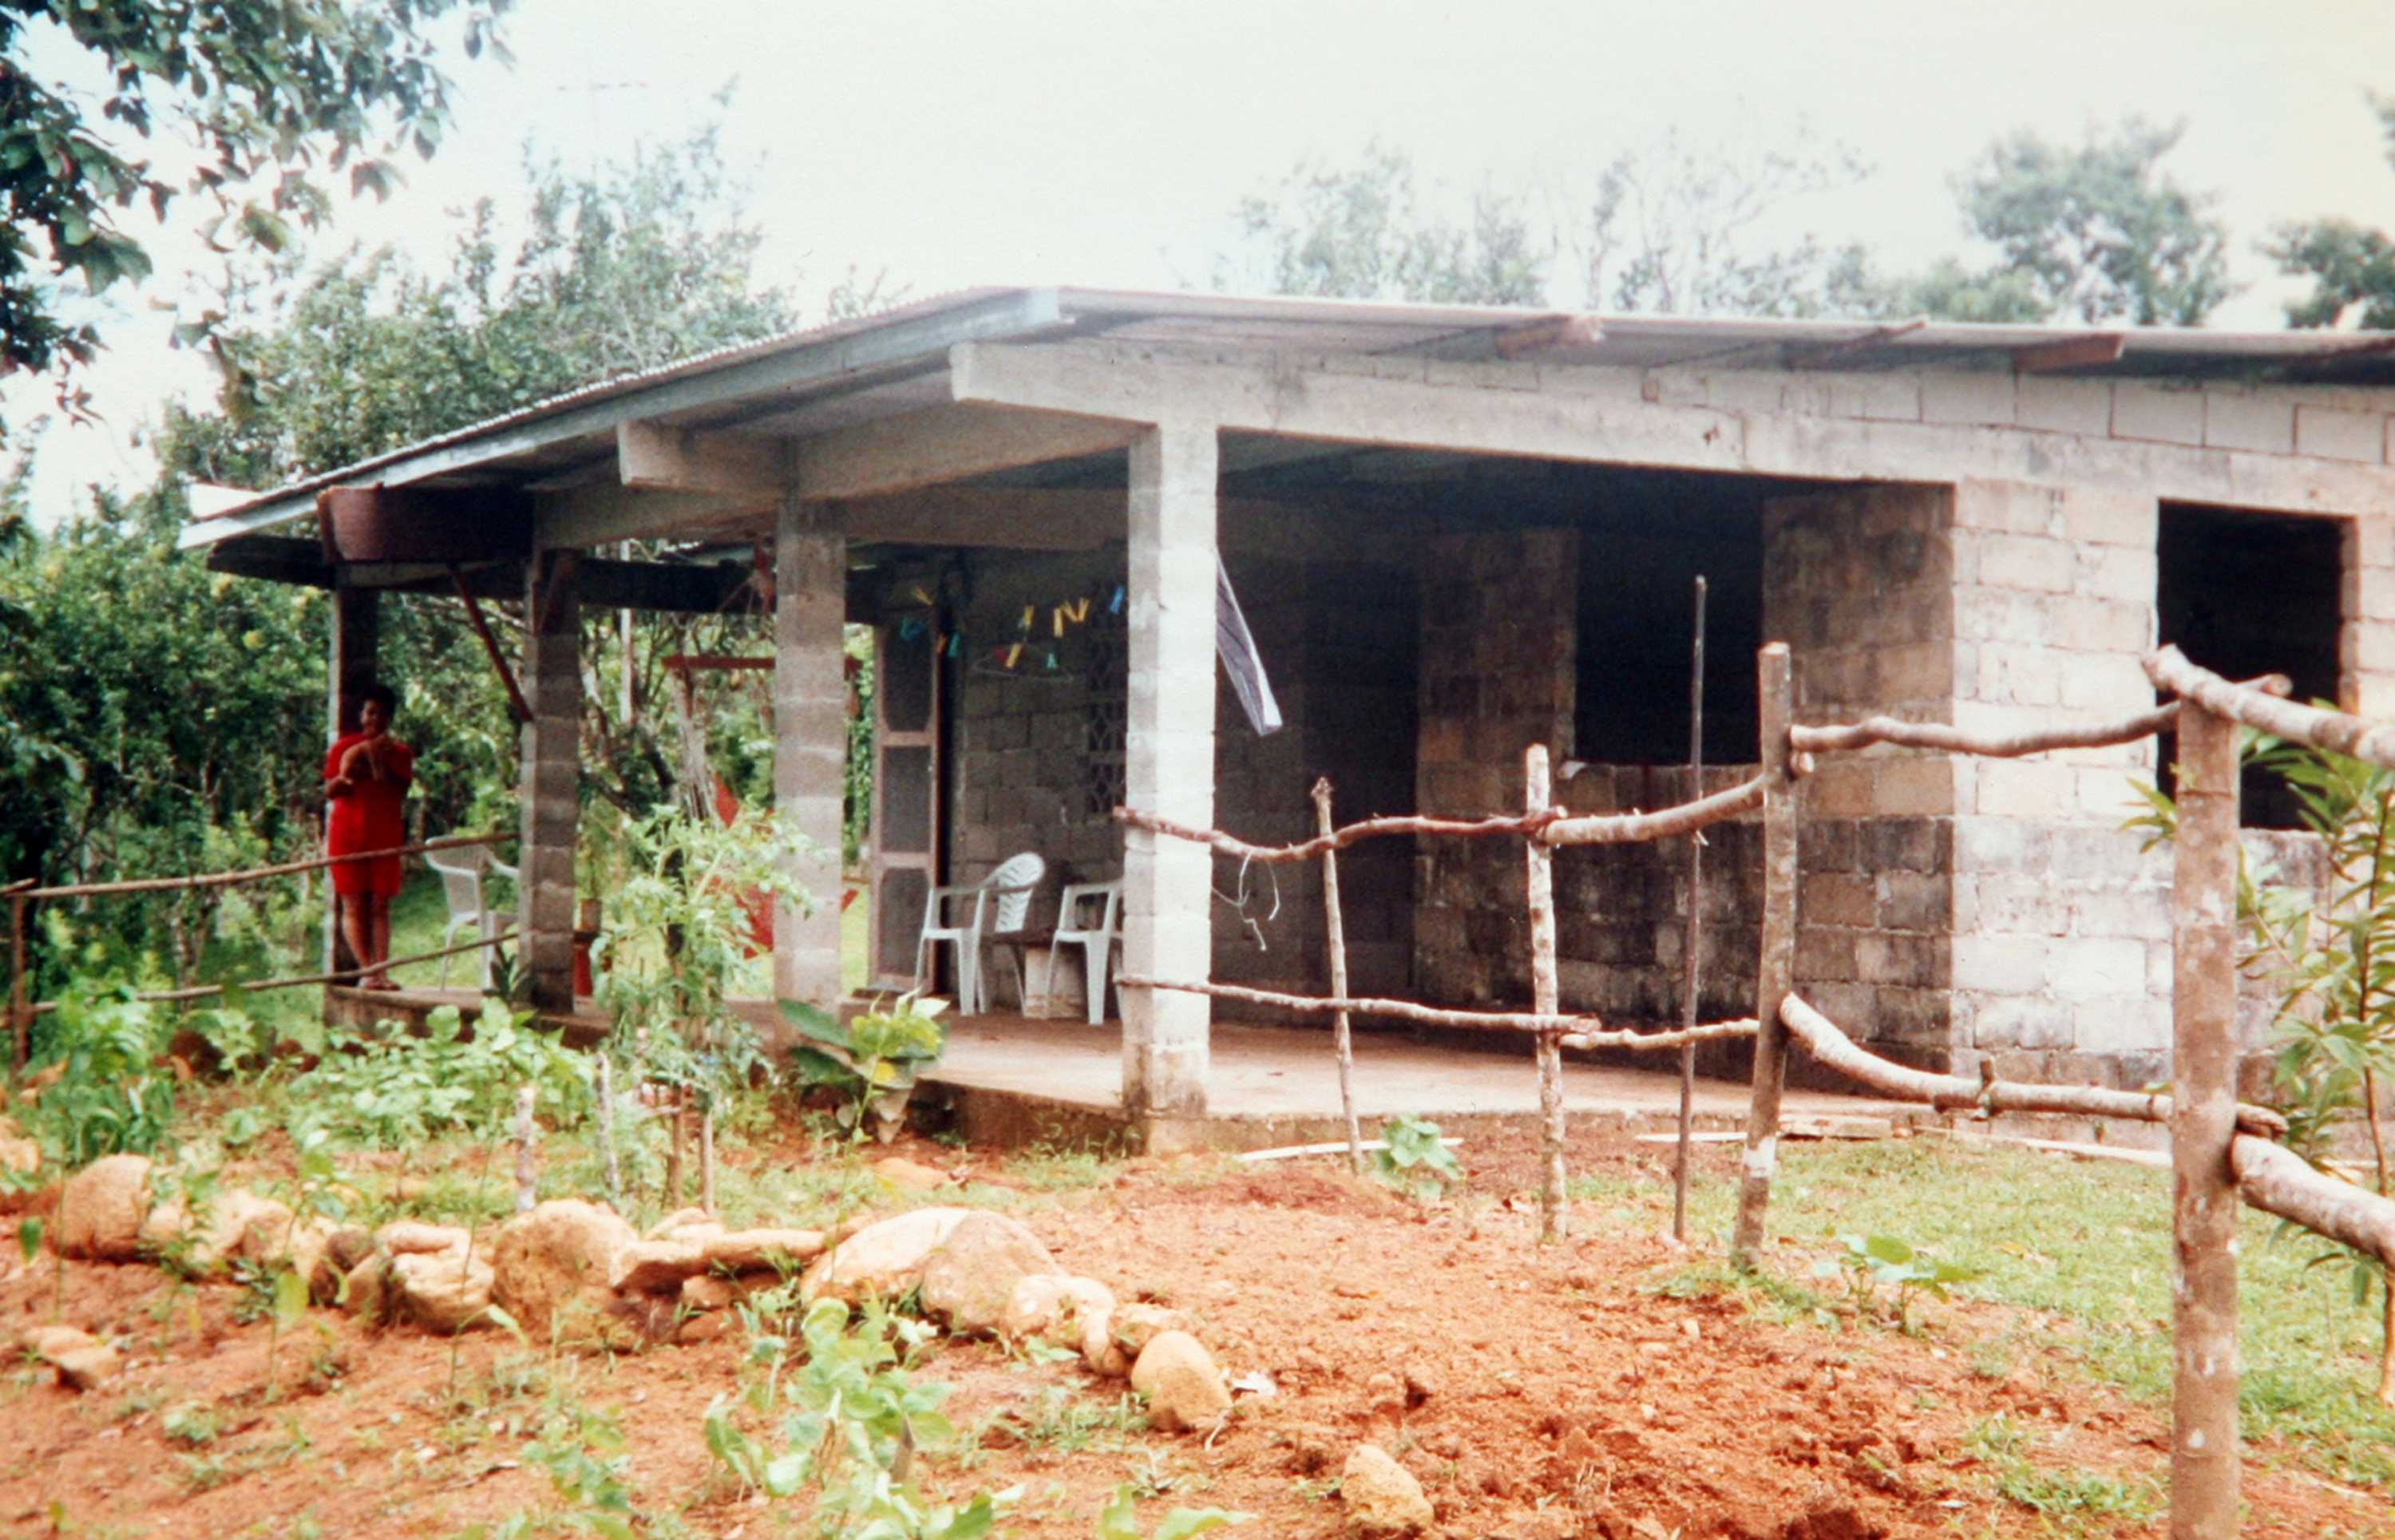 Peace corps volunteers John and Sally Mincks spent 27 months in this house in Panama where they helped villagers build a community center and a park. (Handout/Fresno Bee/MCT)